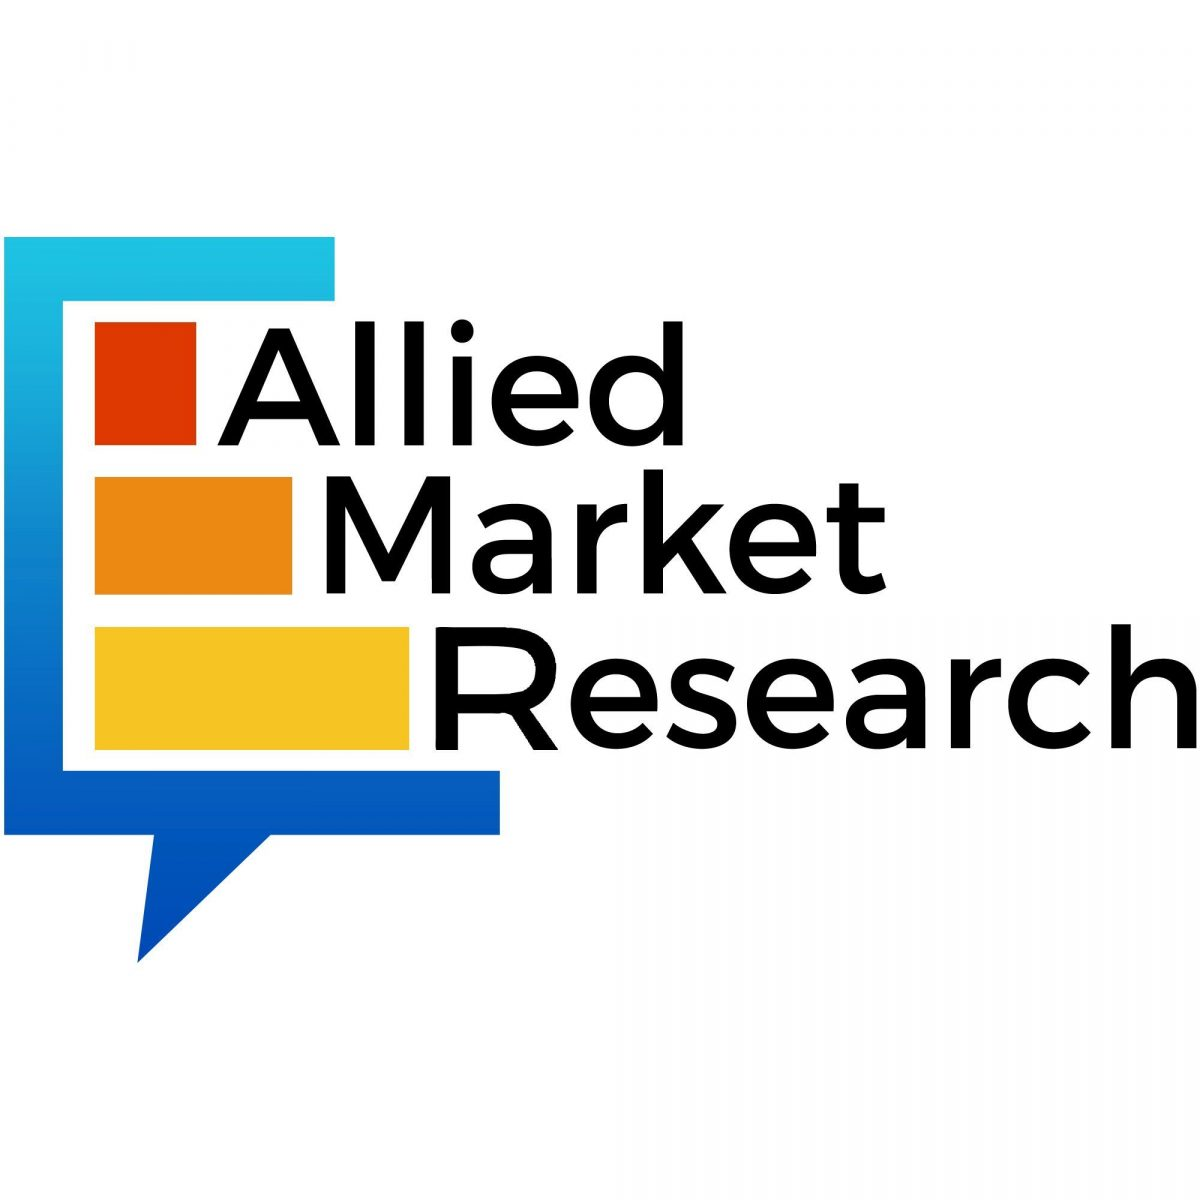 Automotive Sensor Market to Reach $37.65 Billion, Globally, by 2027 at 10.2% CAGR: Allied Market Research